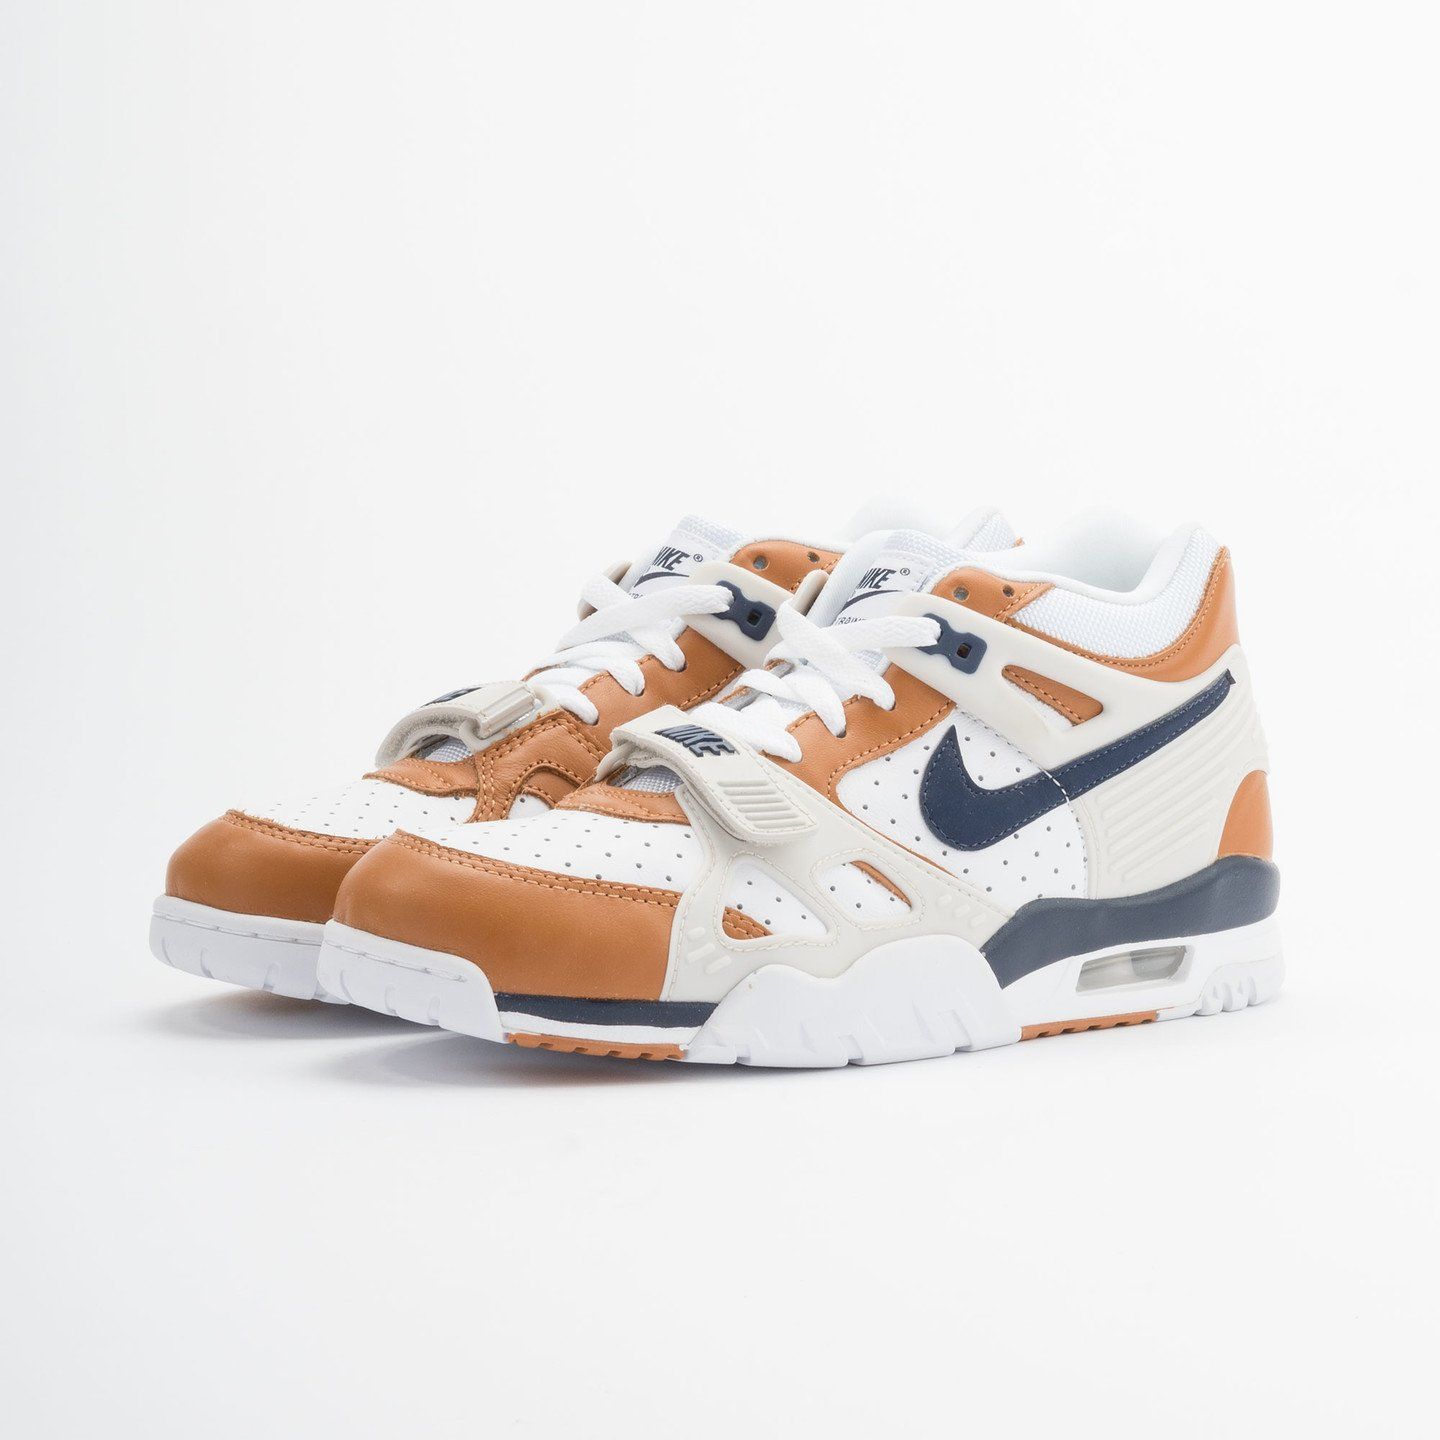 Nike Air Trainer 3 Premium Medicine Ball White/Mid Navy-Gngr-Lght Bn 705425-100-46